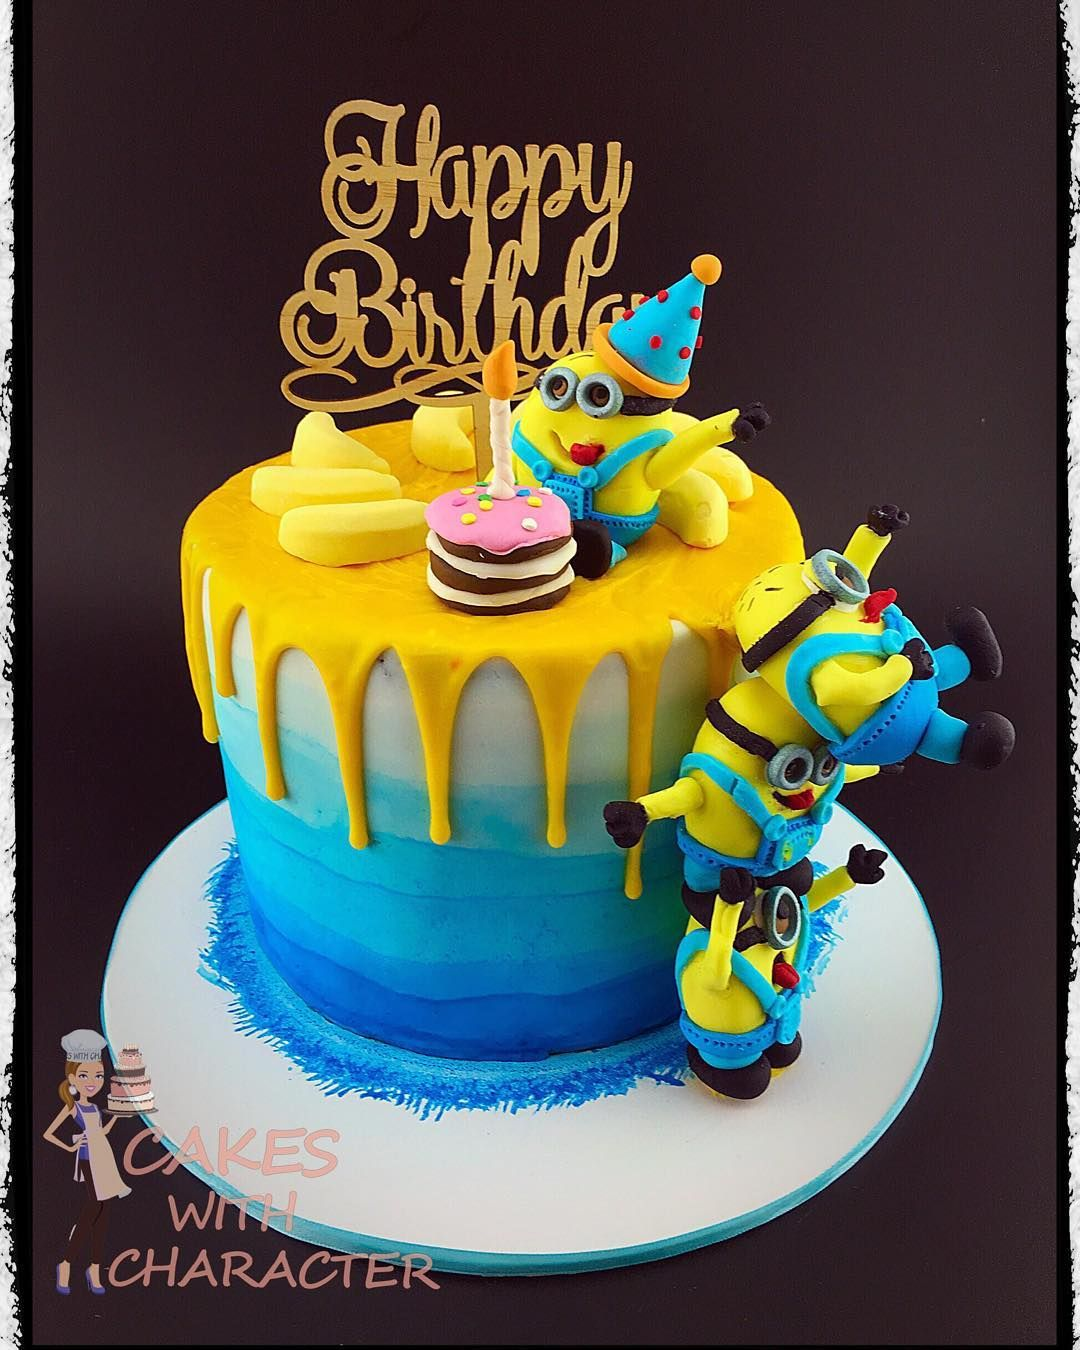 Magnificent Minion Drip Cake Cakes With Character With Images Minion Funny Birthday Cards Online Unhofree Goldxyz